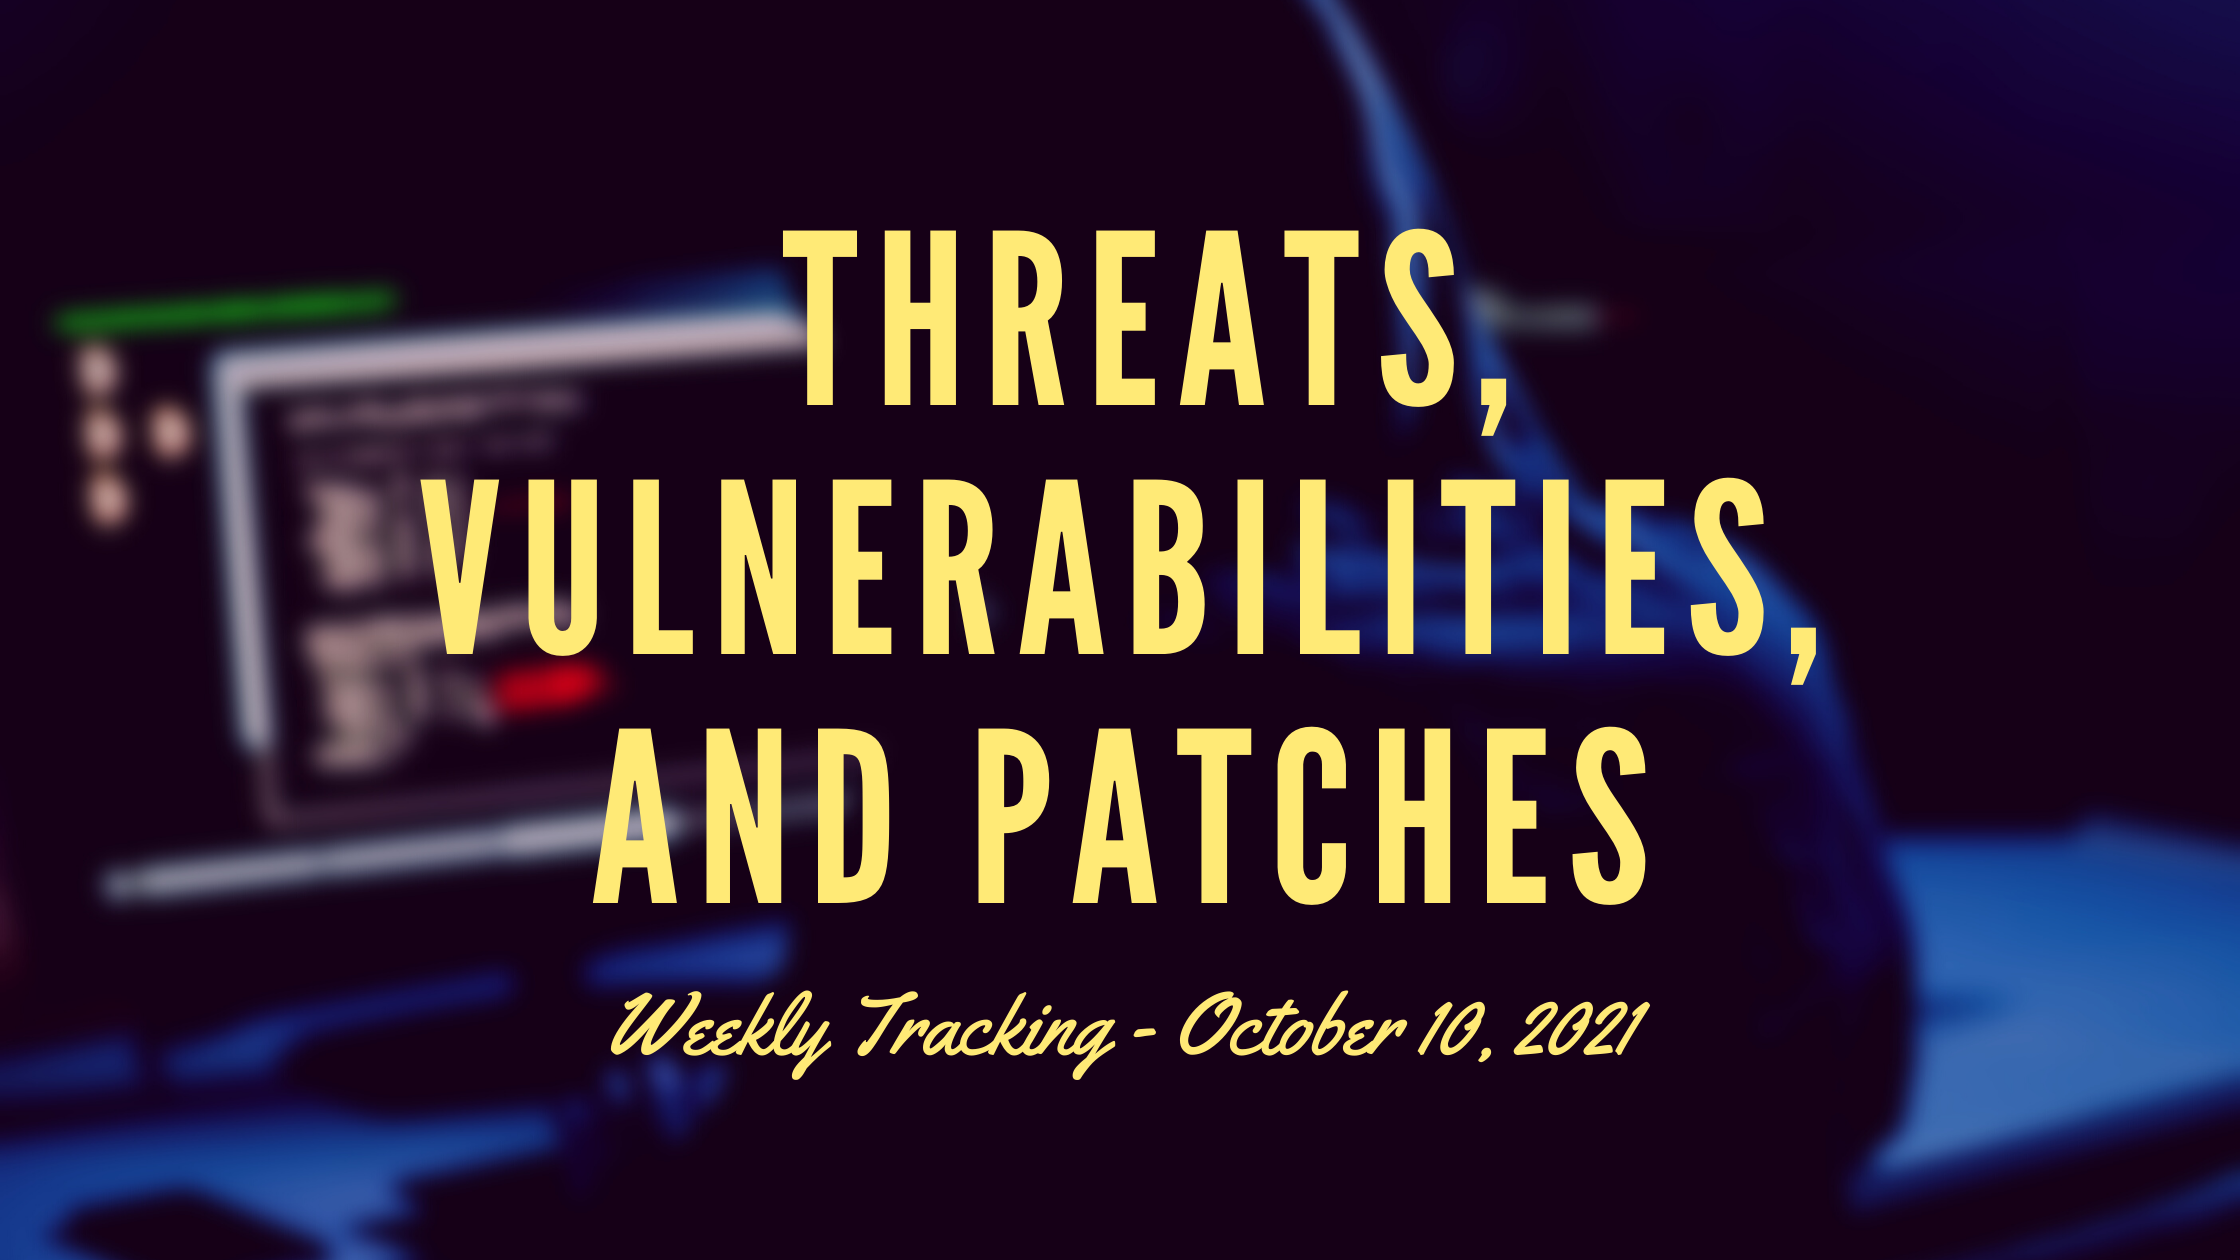 [Security Tip] Threats, Vulnerabilities, and Patches - Oct 10, 2021